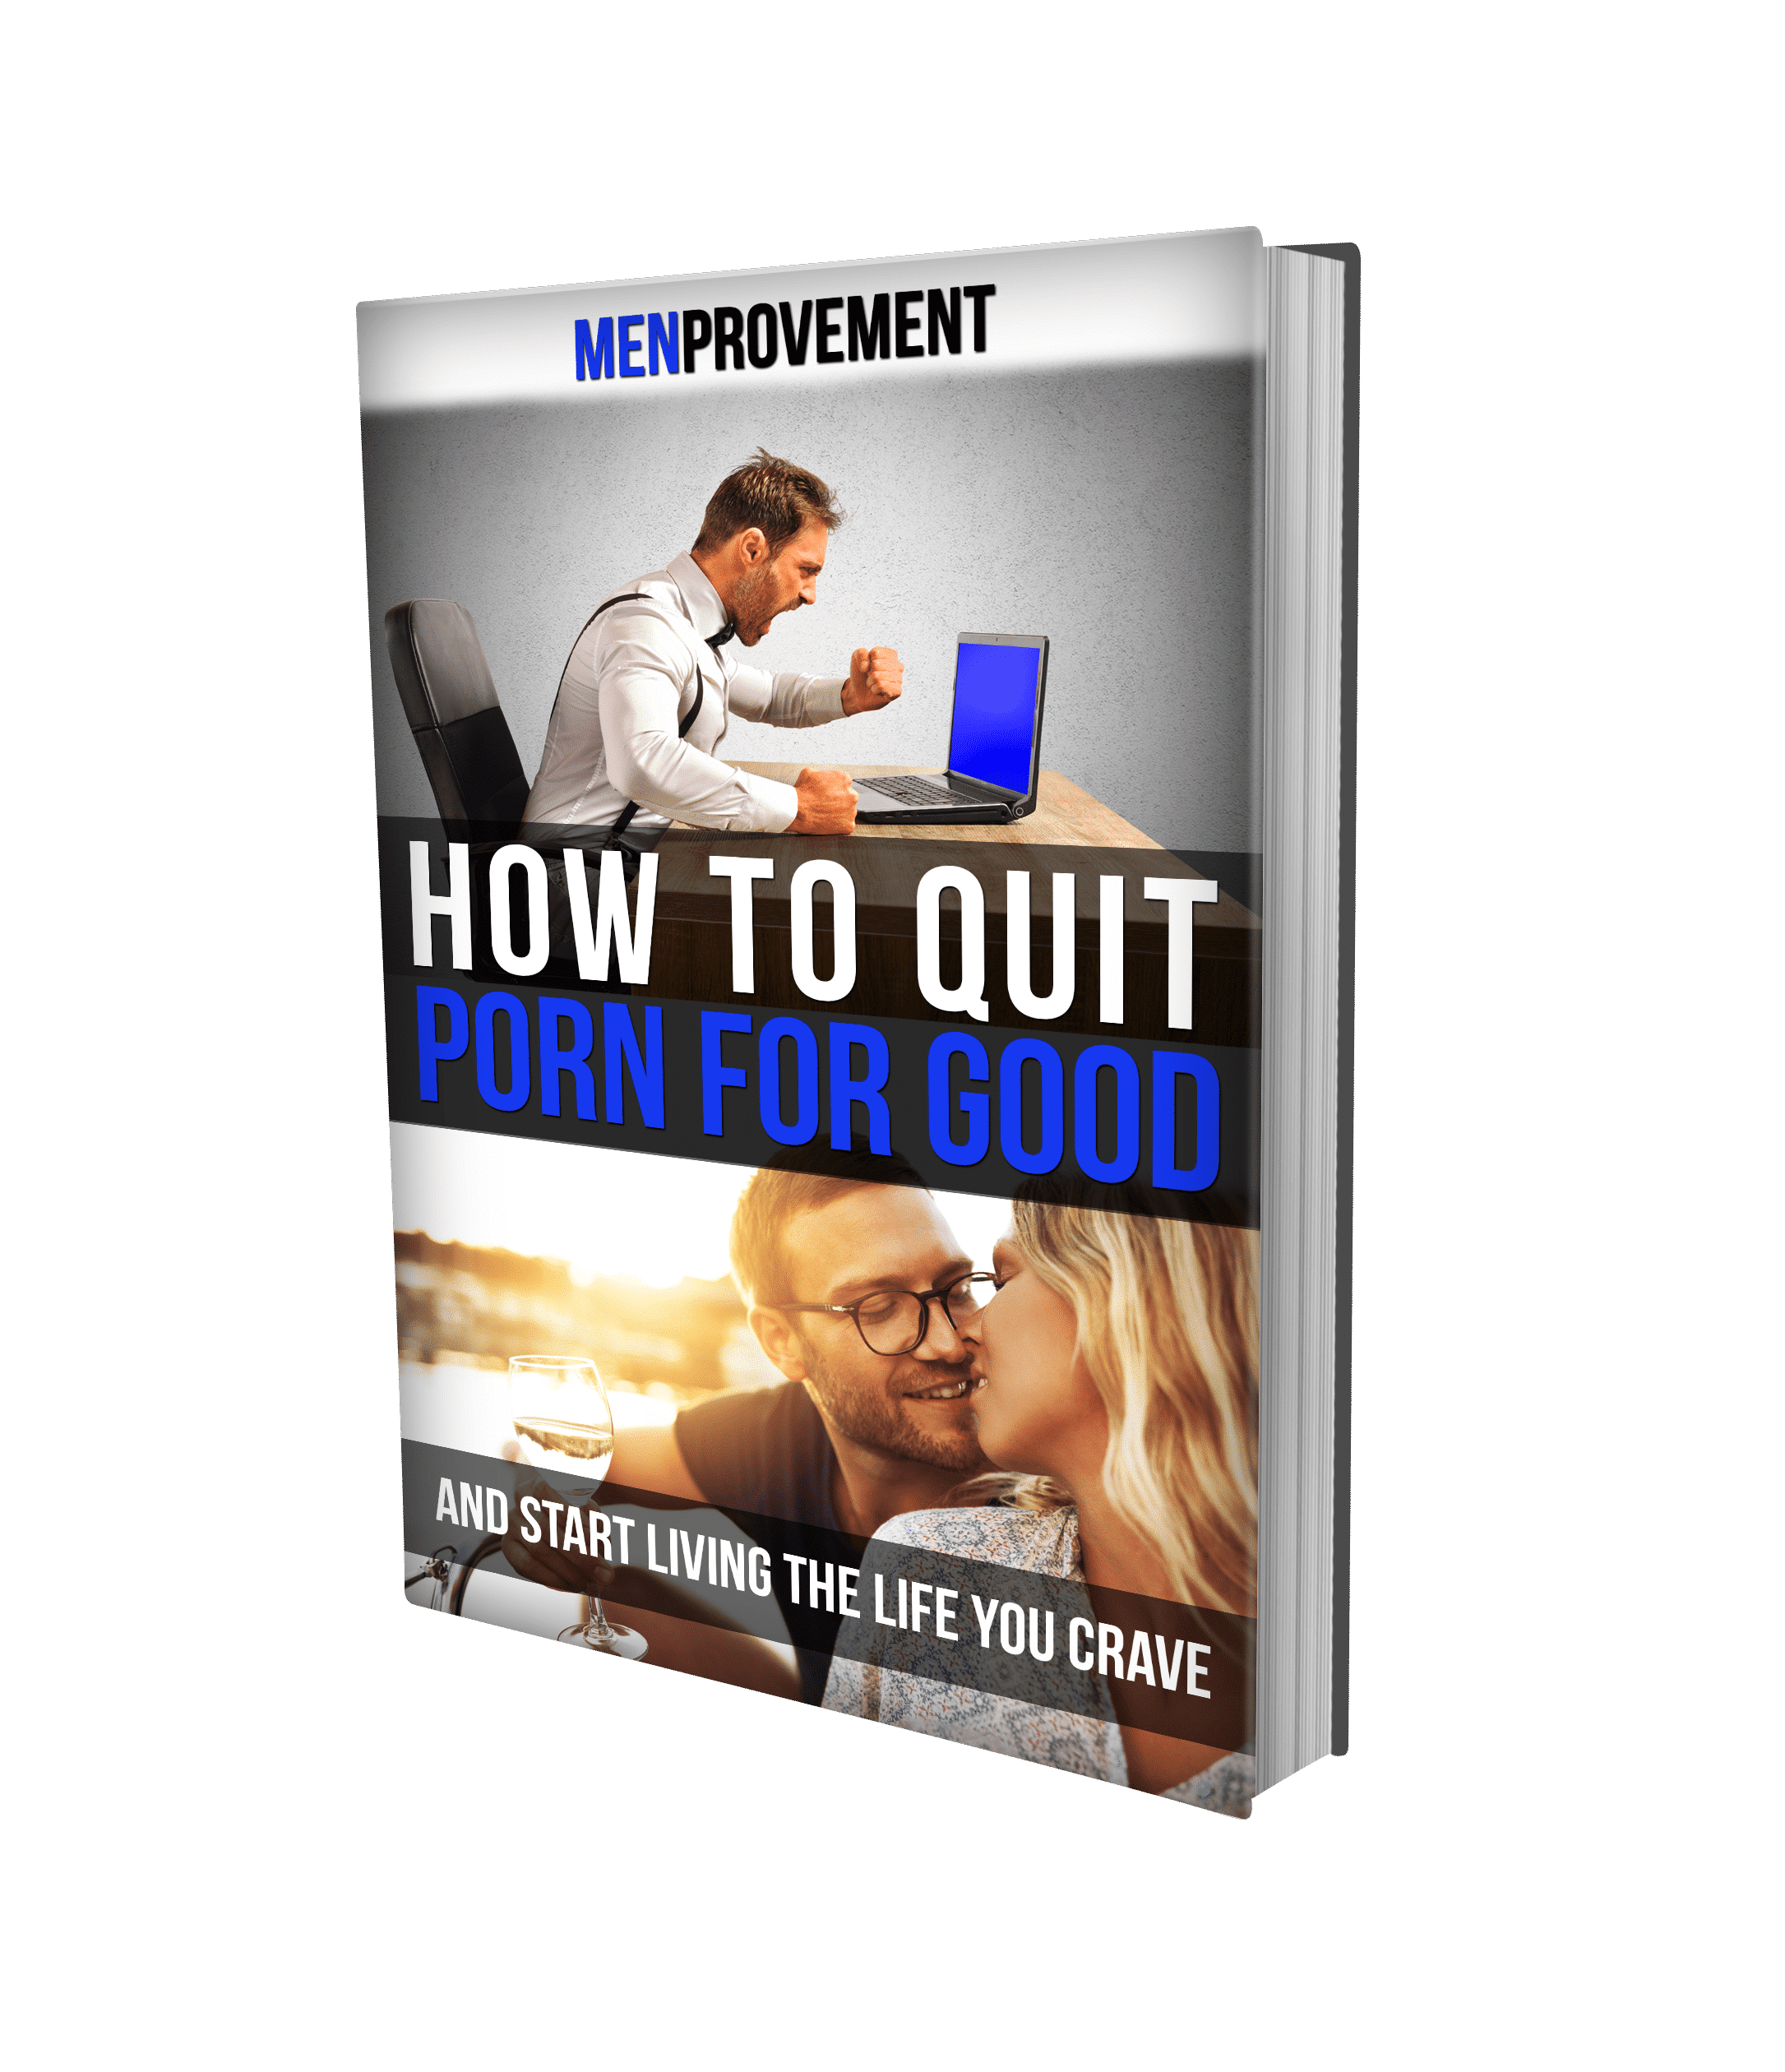 How to quit porn for good